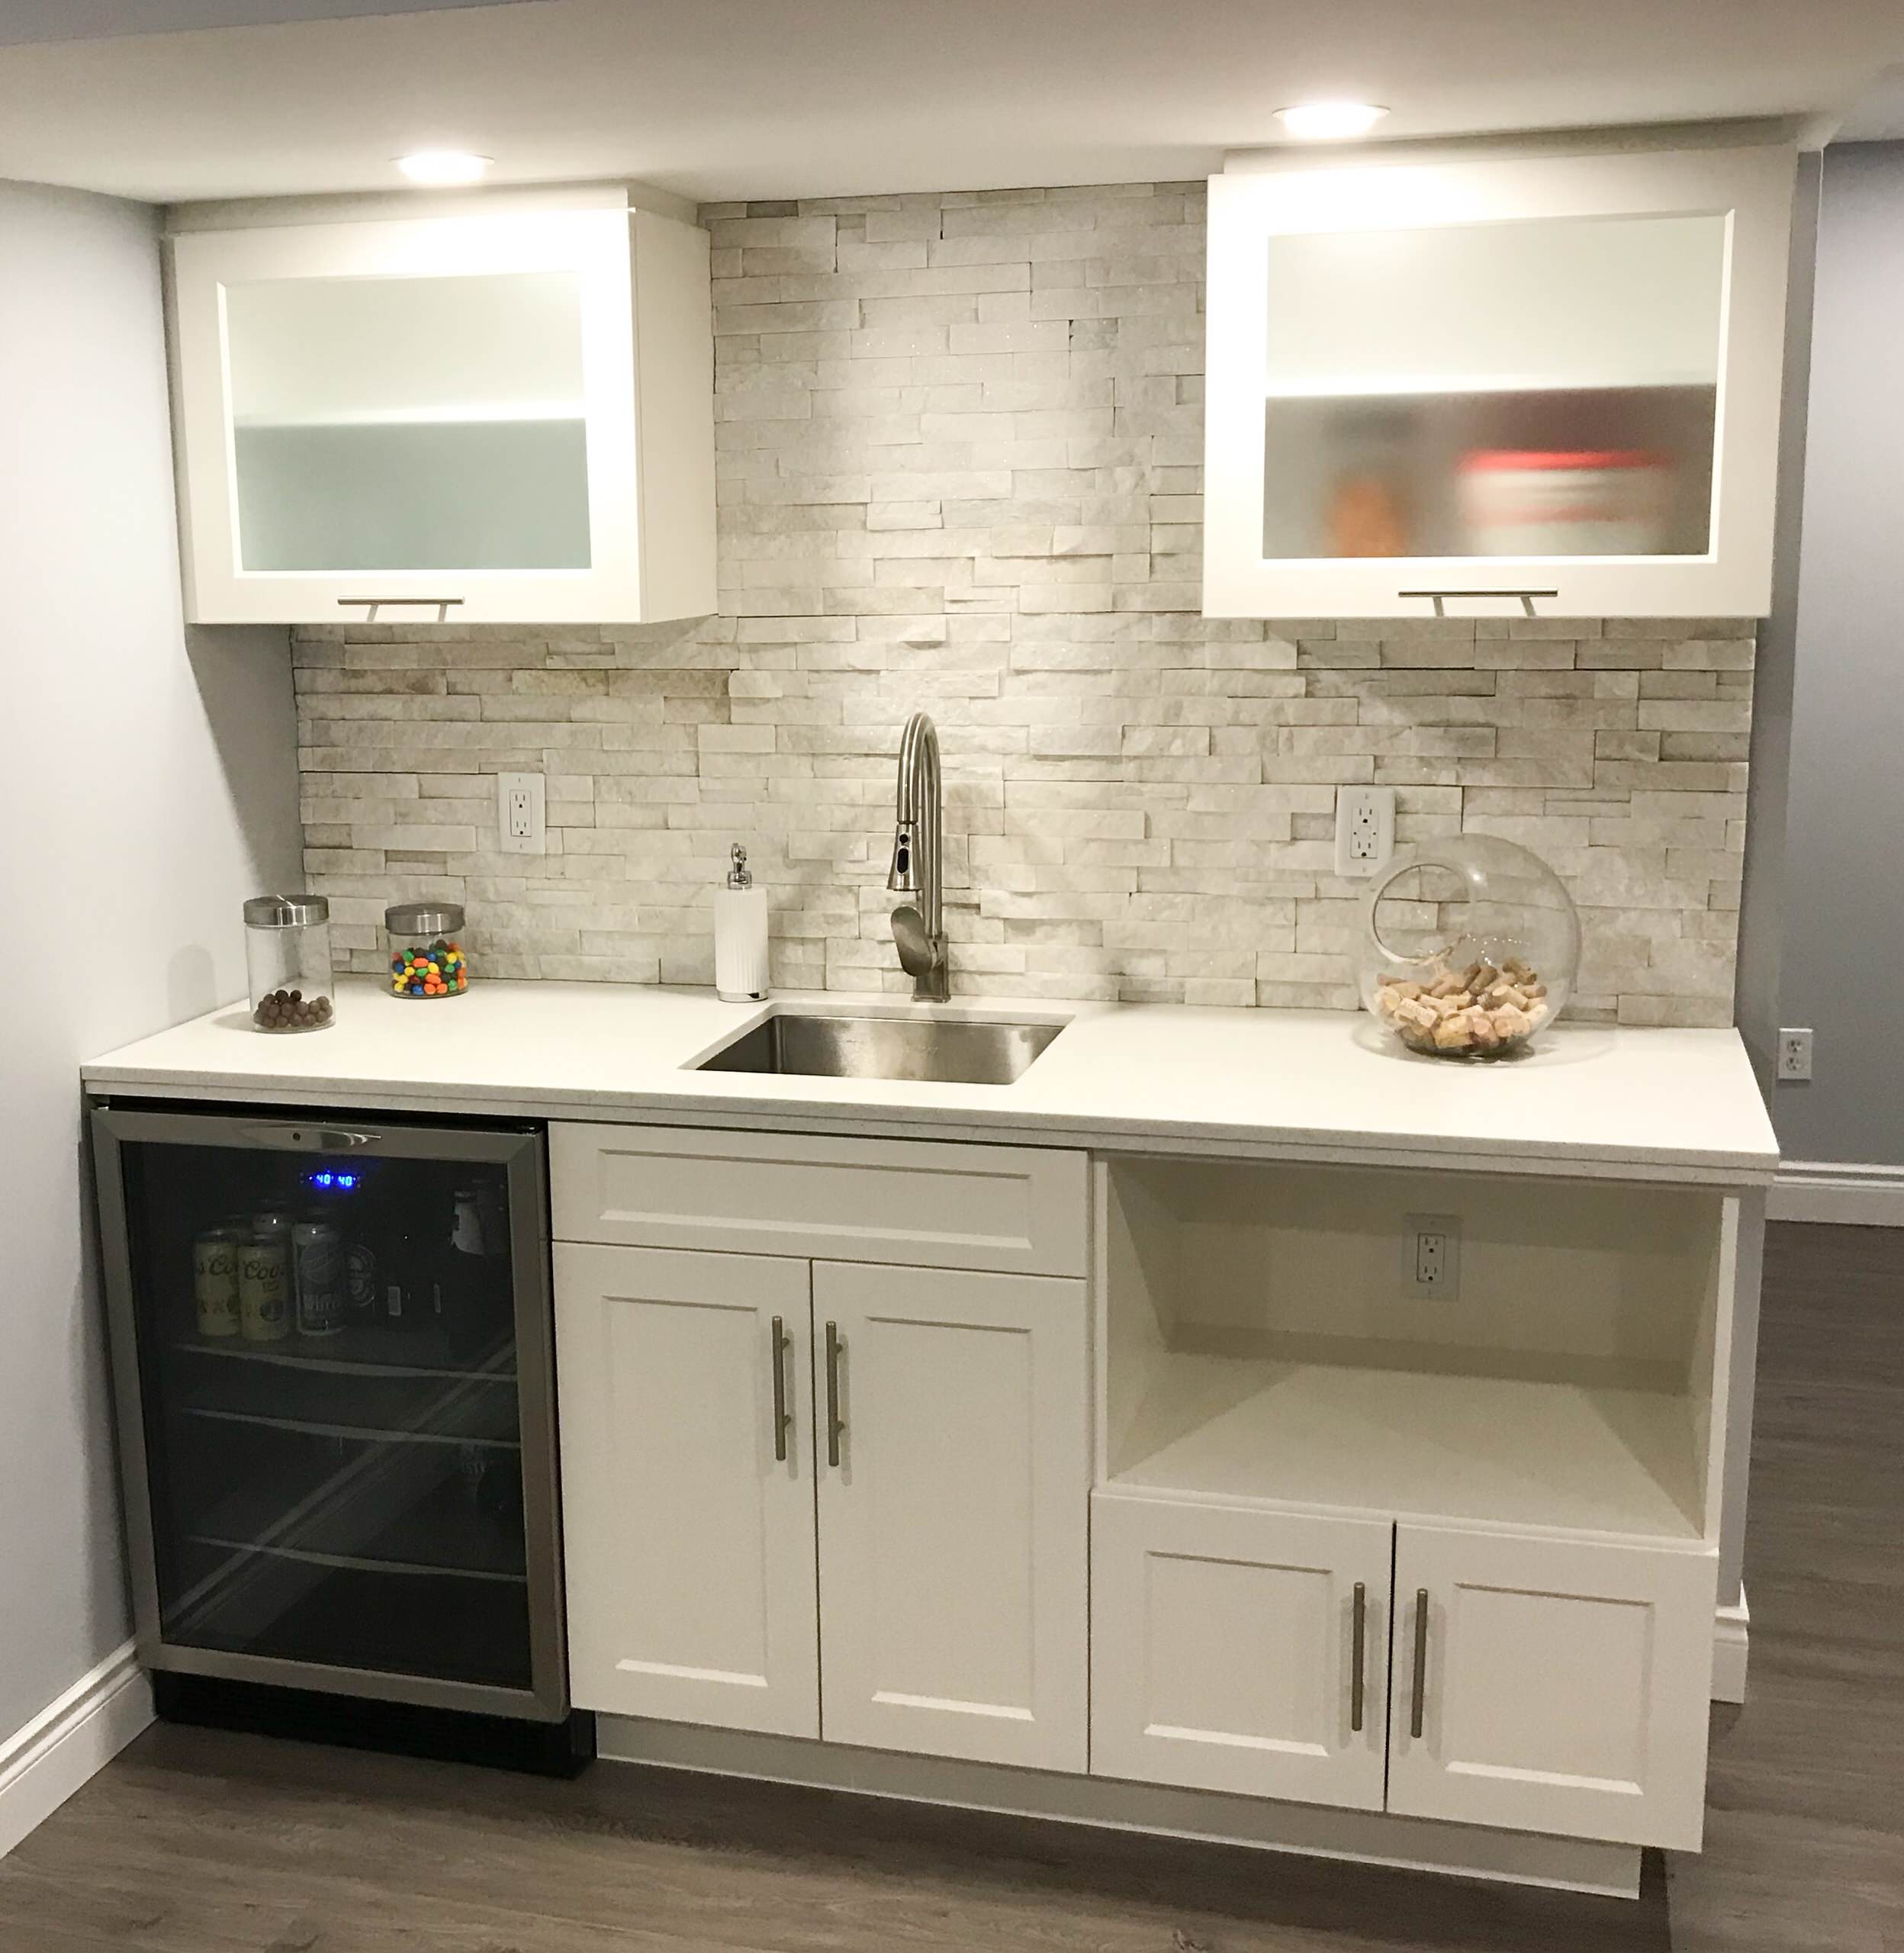 9 Beautiful Small Basement Pictures & Ideas   August, 9   Houzz